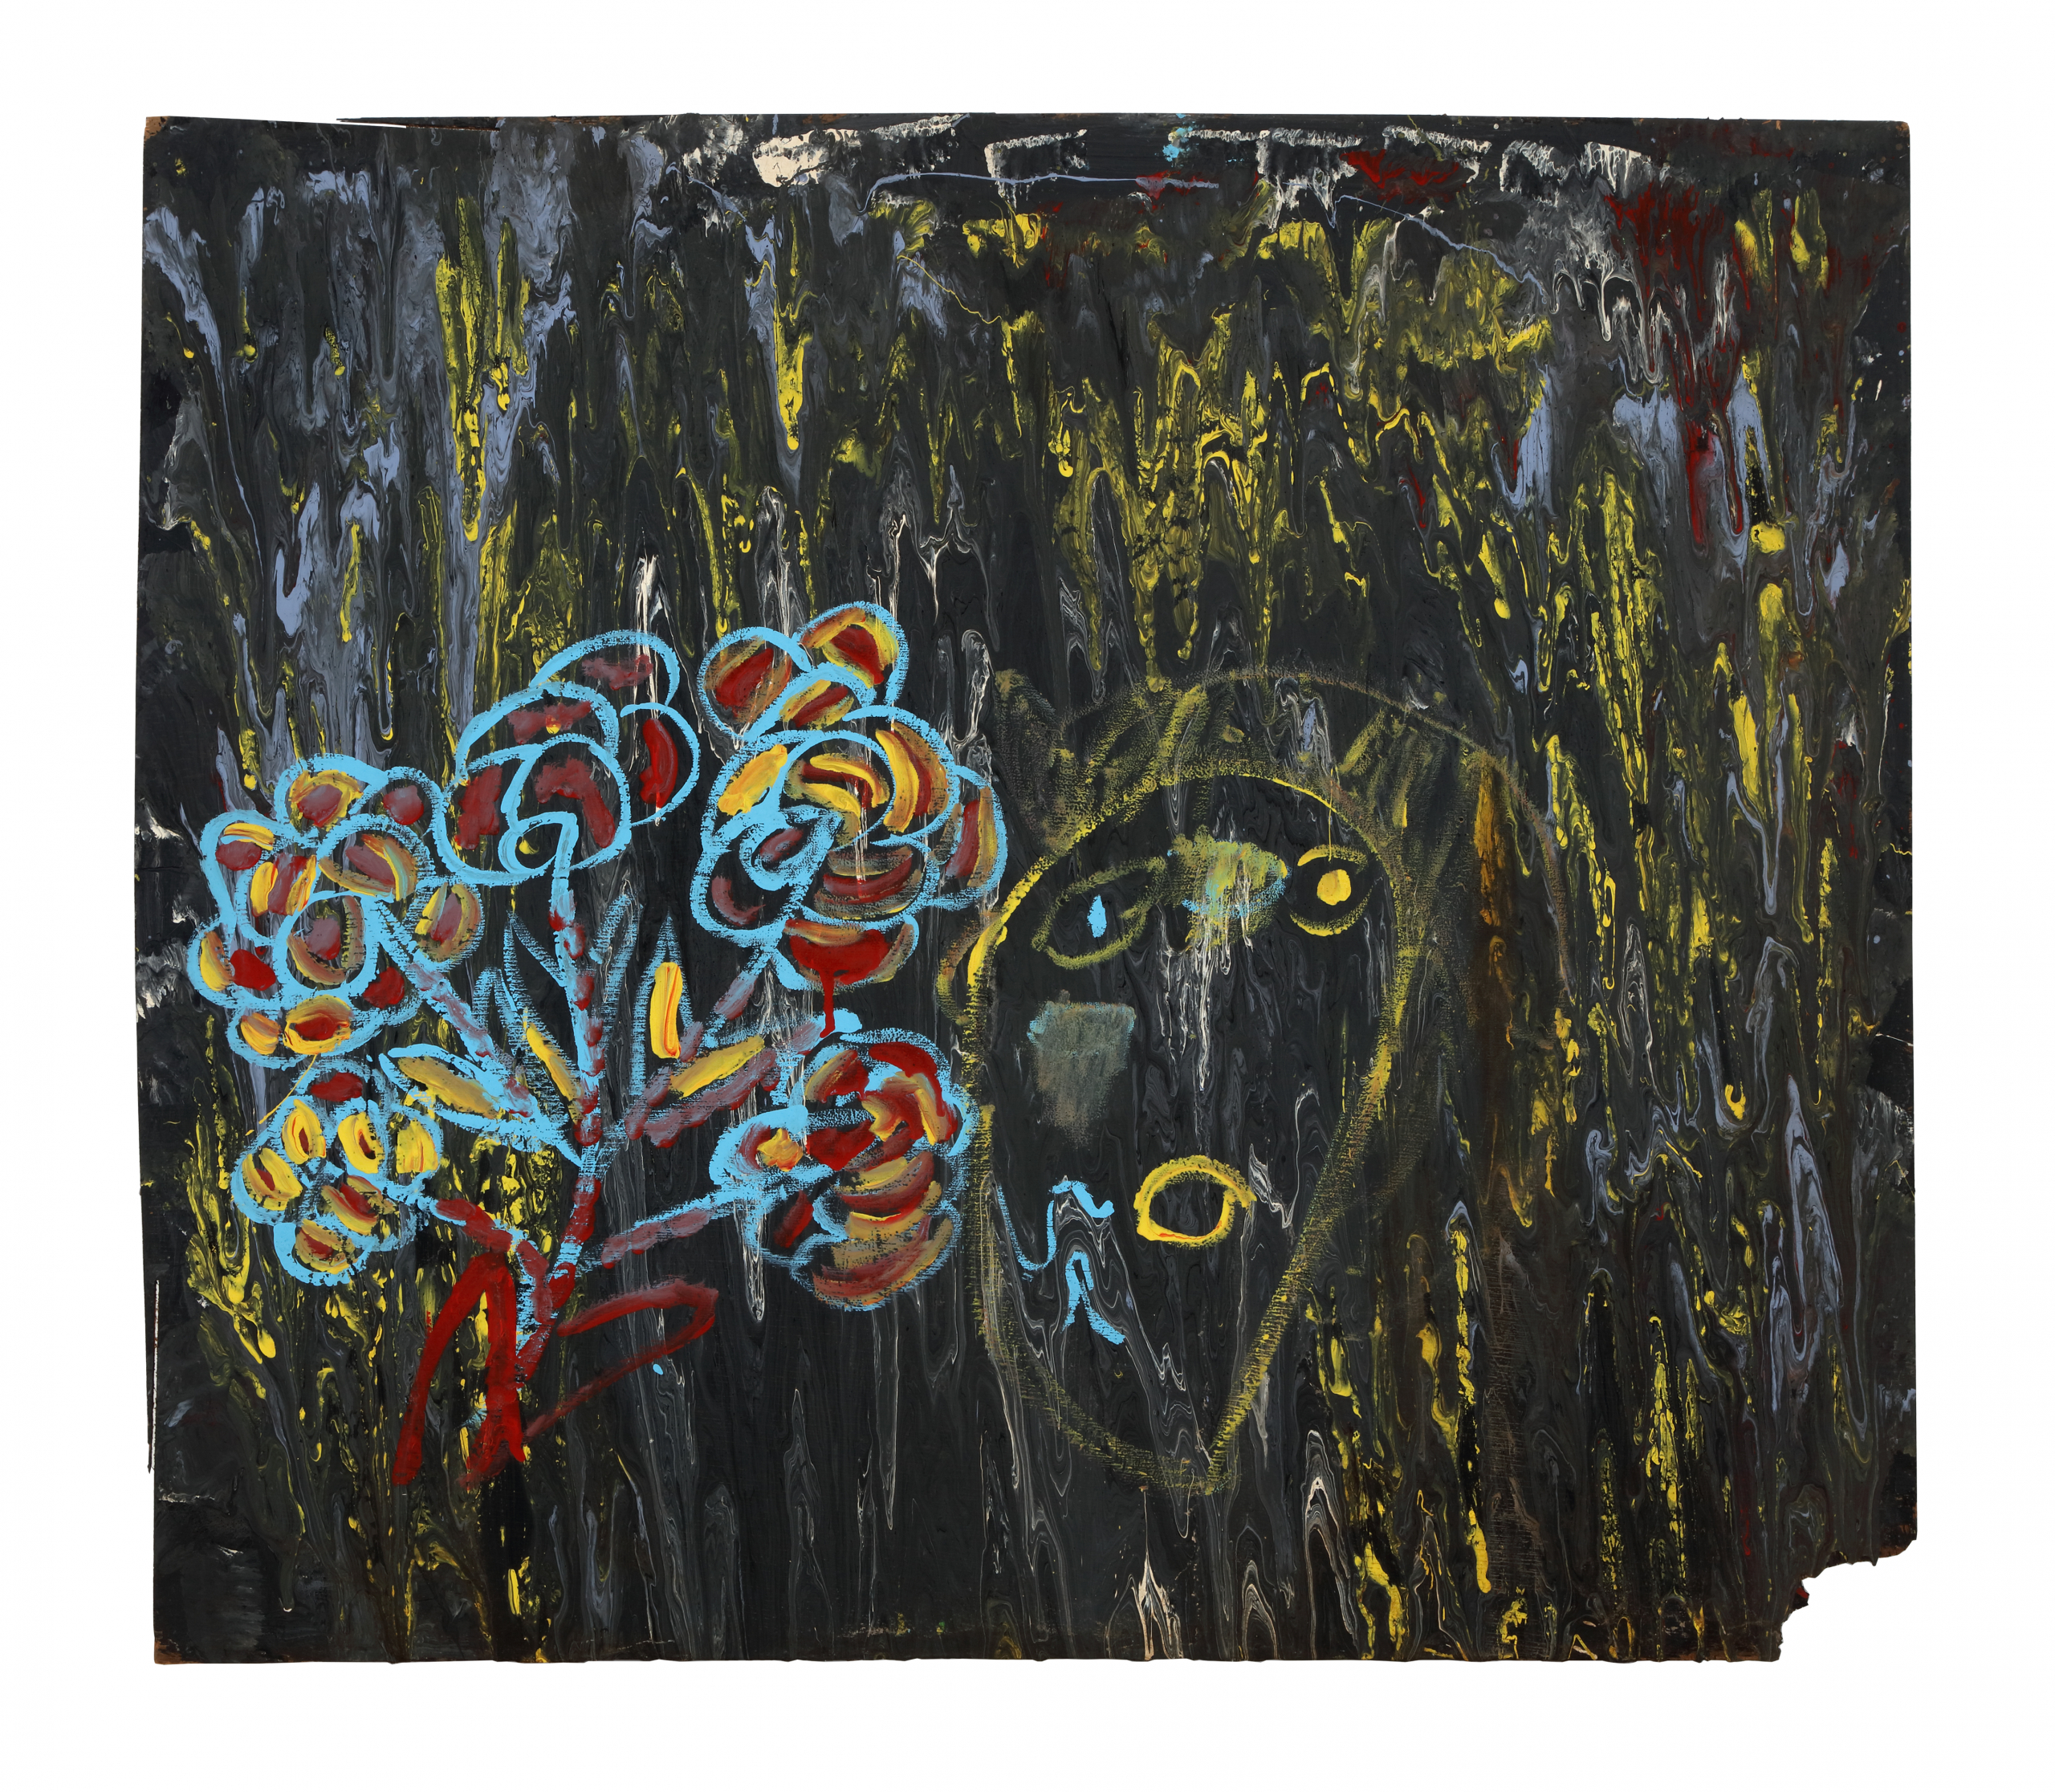 An untitled painting by Thornton Dial, dated 1988.